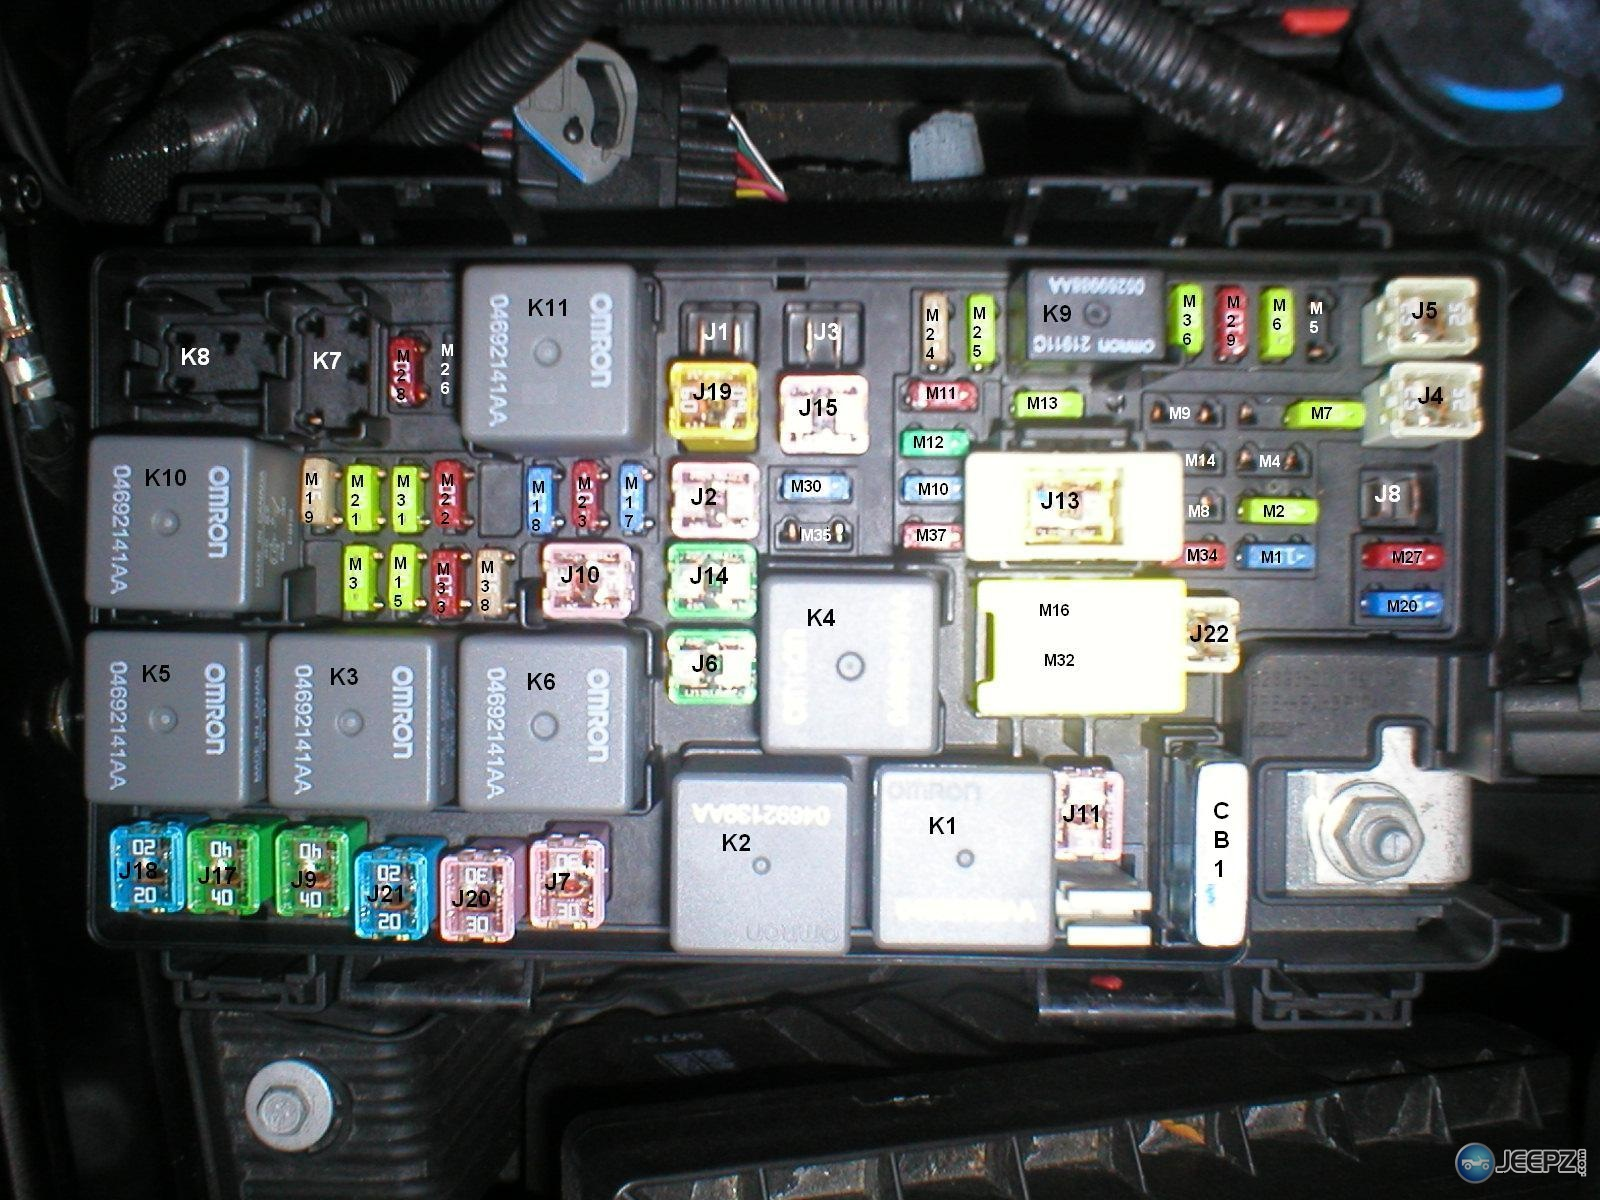 2008 Jeep Wrangler Fuse Box Diagram Additionally 2000 Jeep Cherokee